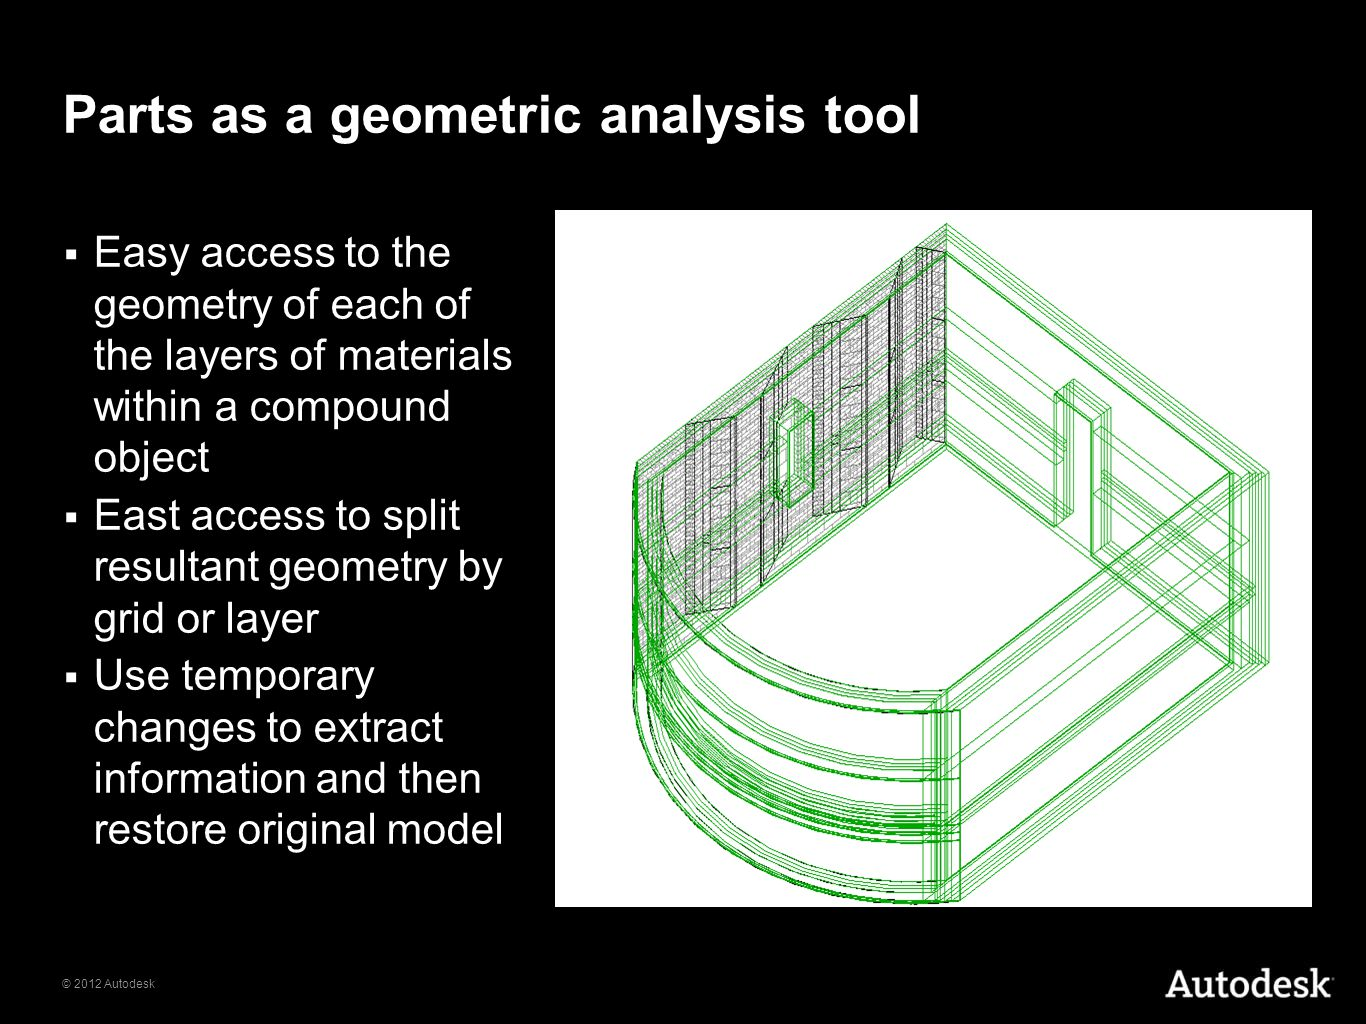 © 2012 Autodesk Parts as a geometric analysis tool Easy access to the geometry of each of the layers of materials within a compound object East access